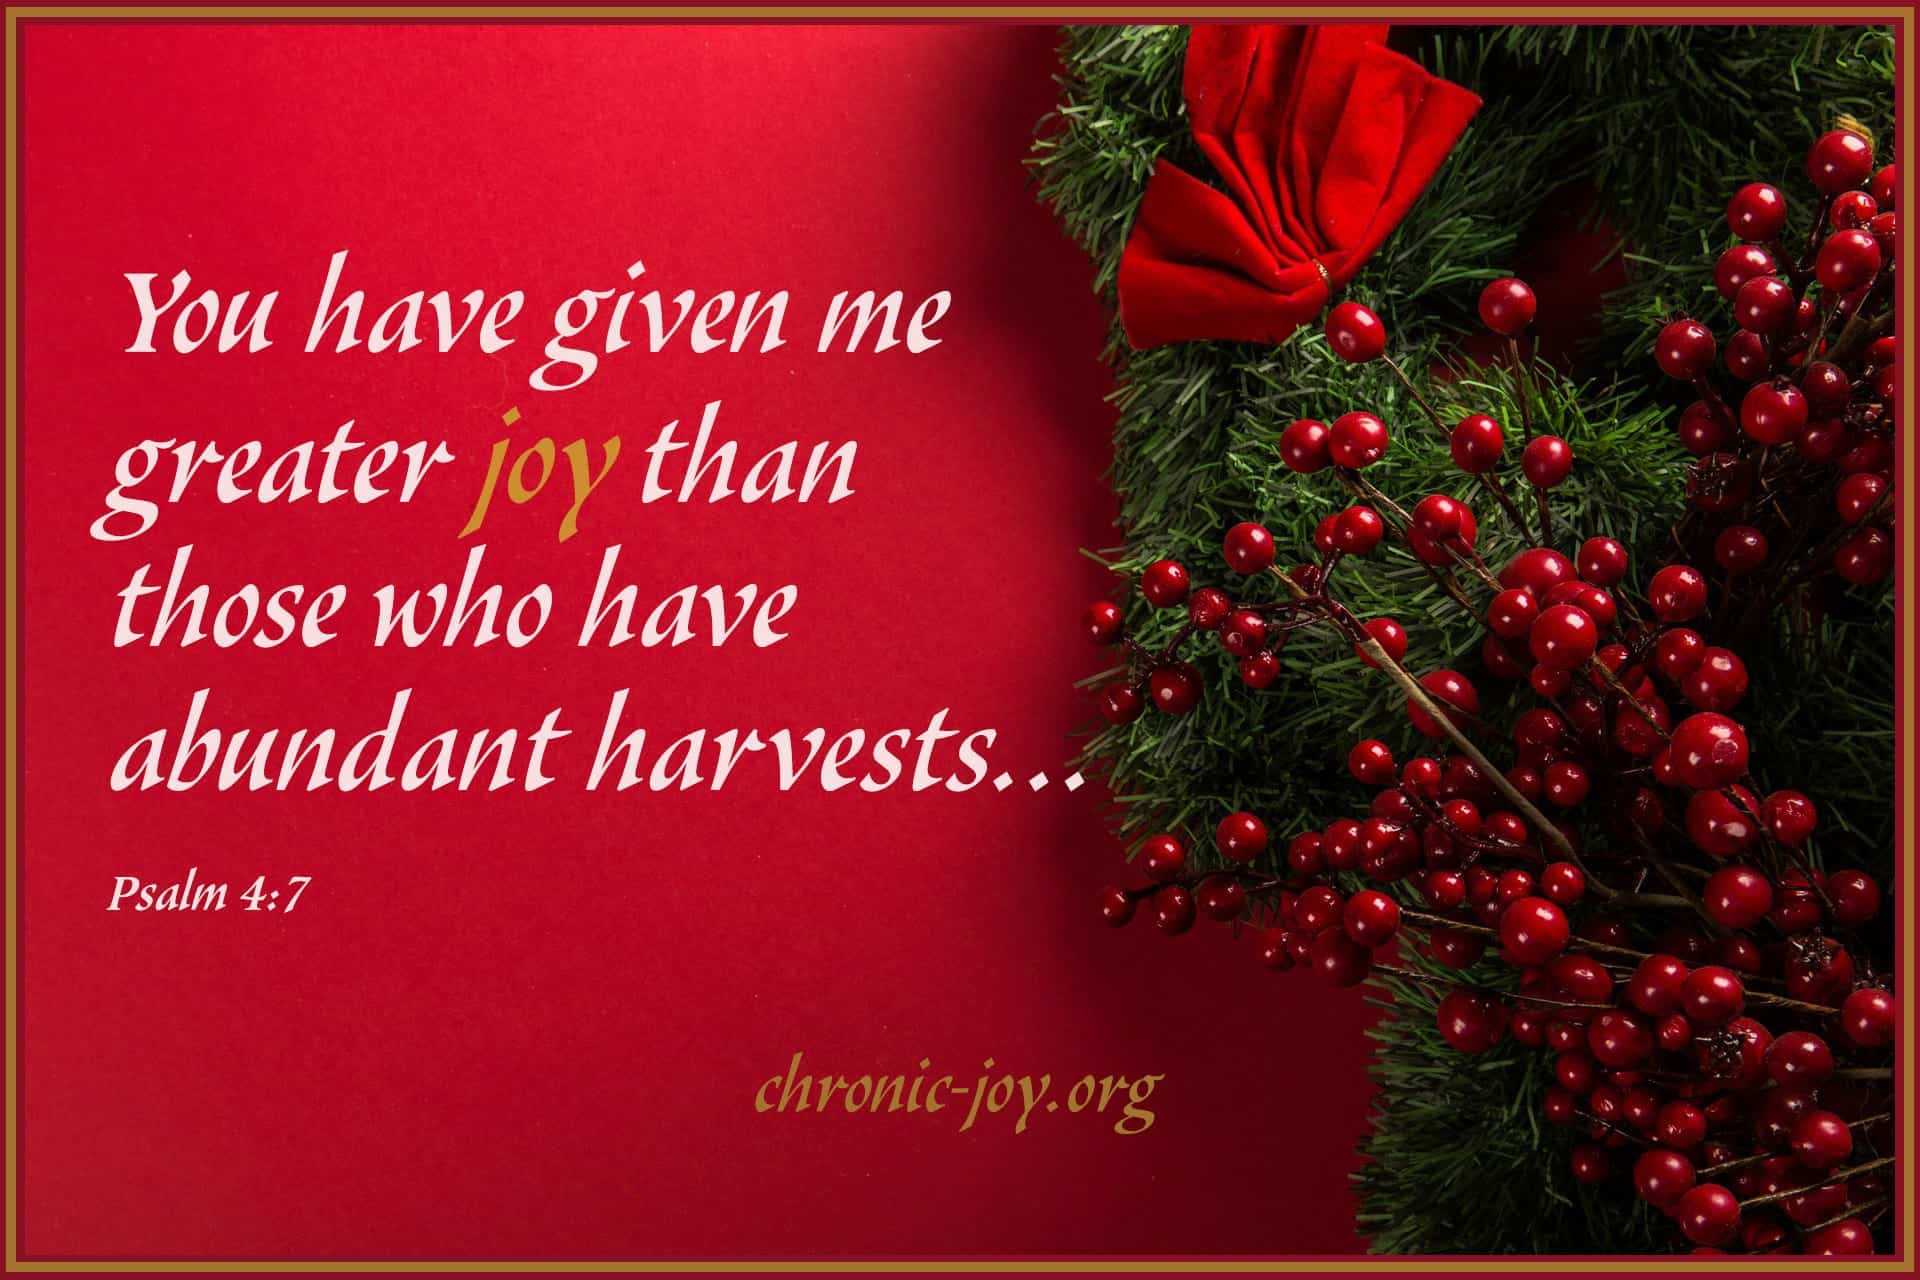 You have given me greater joy...